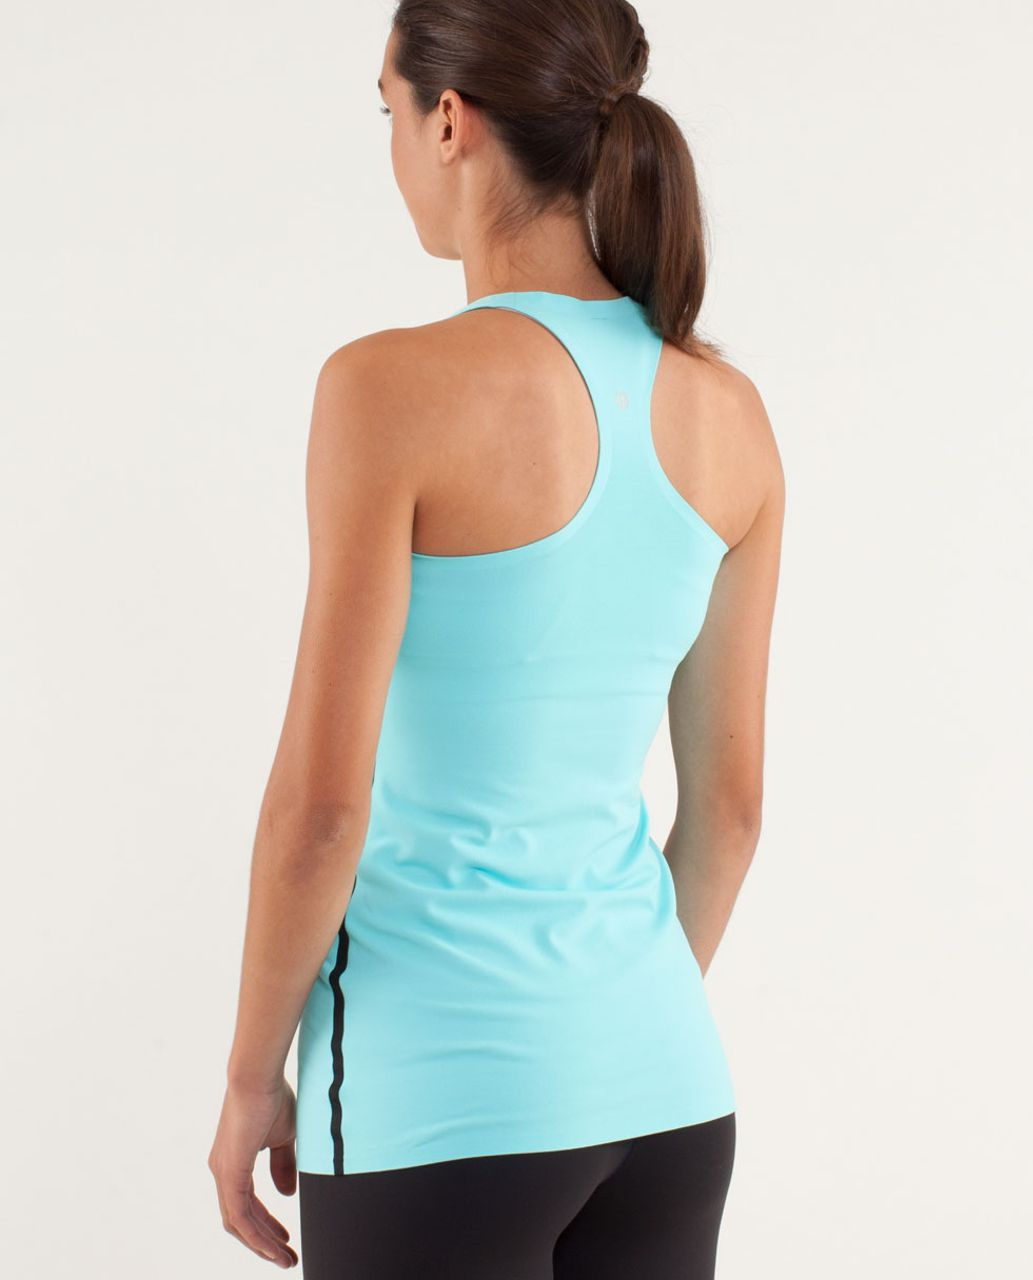 Lululemon Cool Racerback *Bonded - Angel Blue